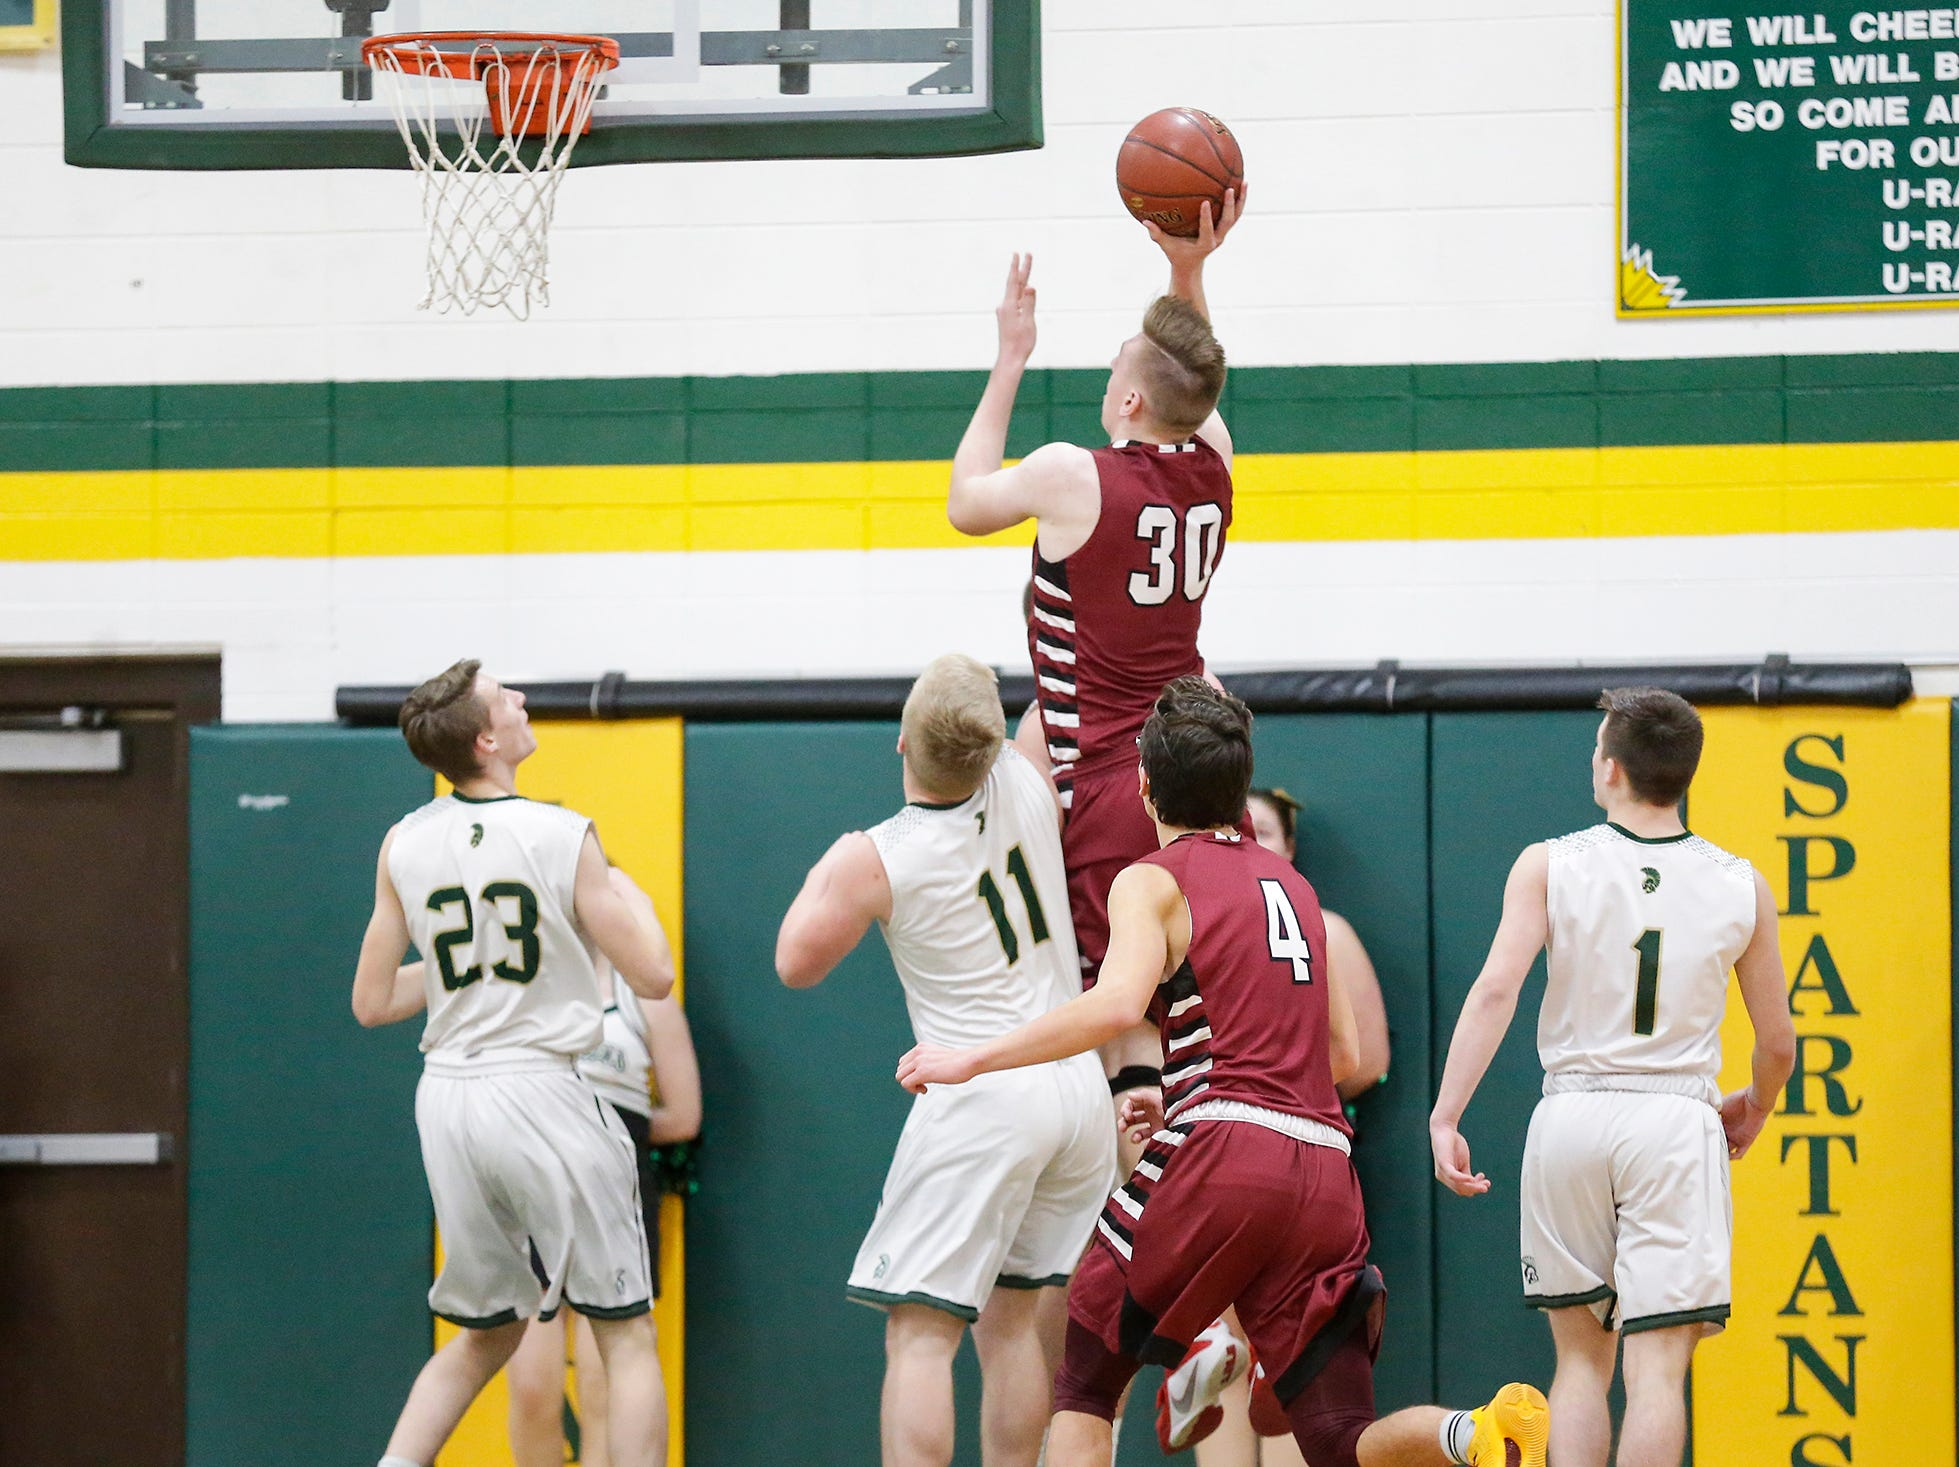 Mayville High School boys basketball's Logan Arroyo goes up for a basket against Laconia High School during their game Friday, January 25, 2019 in Rosendale. Laconia won the game 80-54. Doug Raflik/USA TODAY NETWORK-Wisconsin